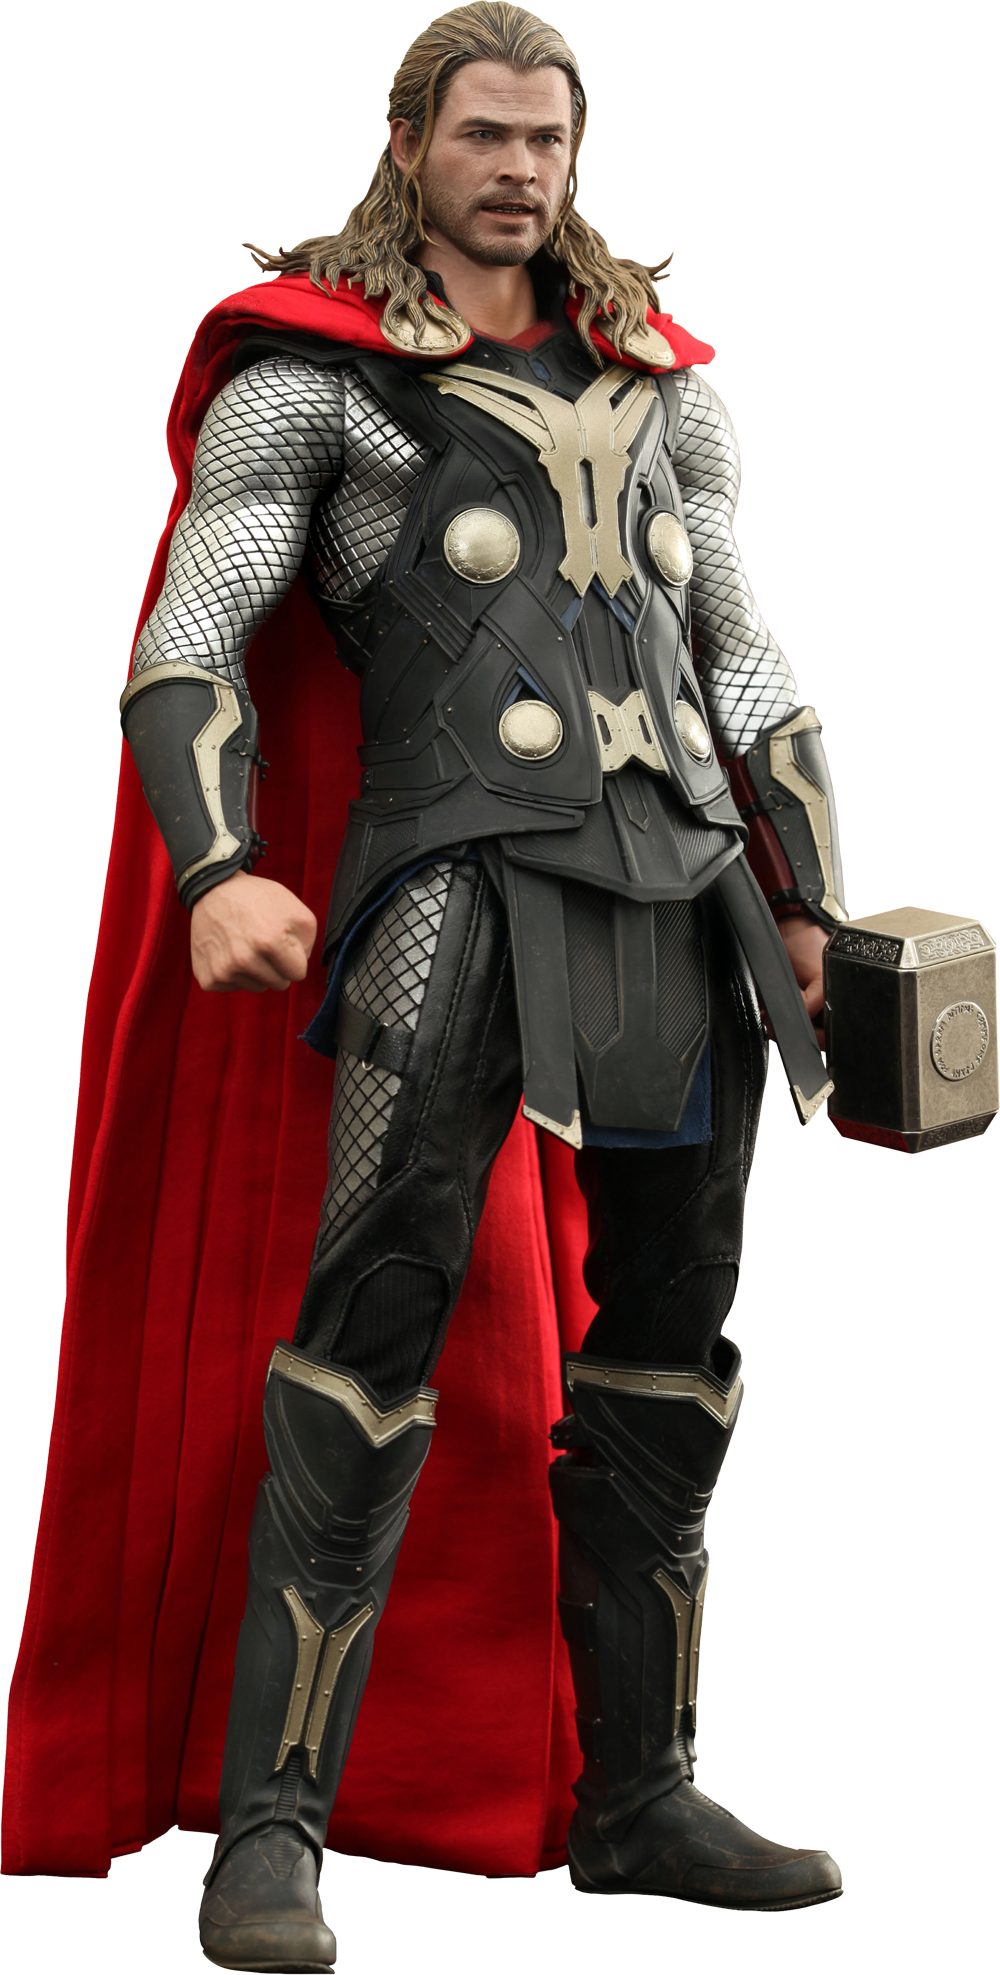 Download PNG image - Thor Png Image - Thor PNG